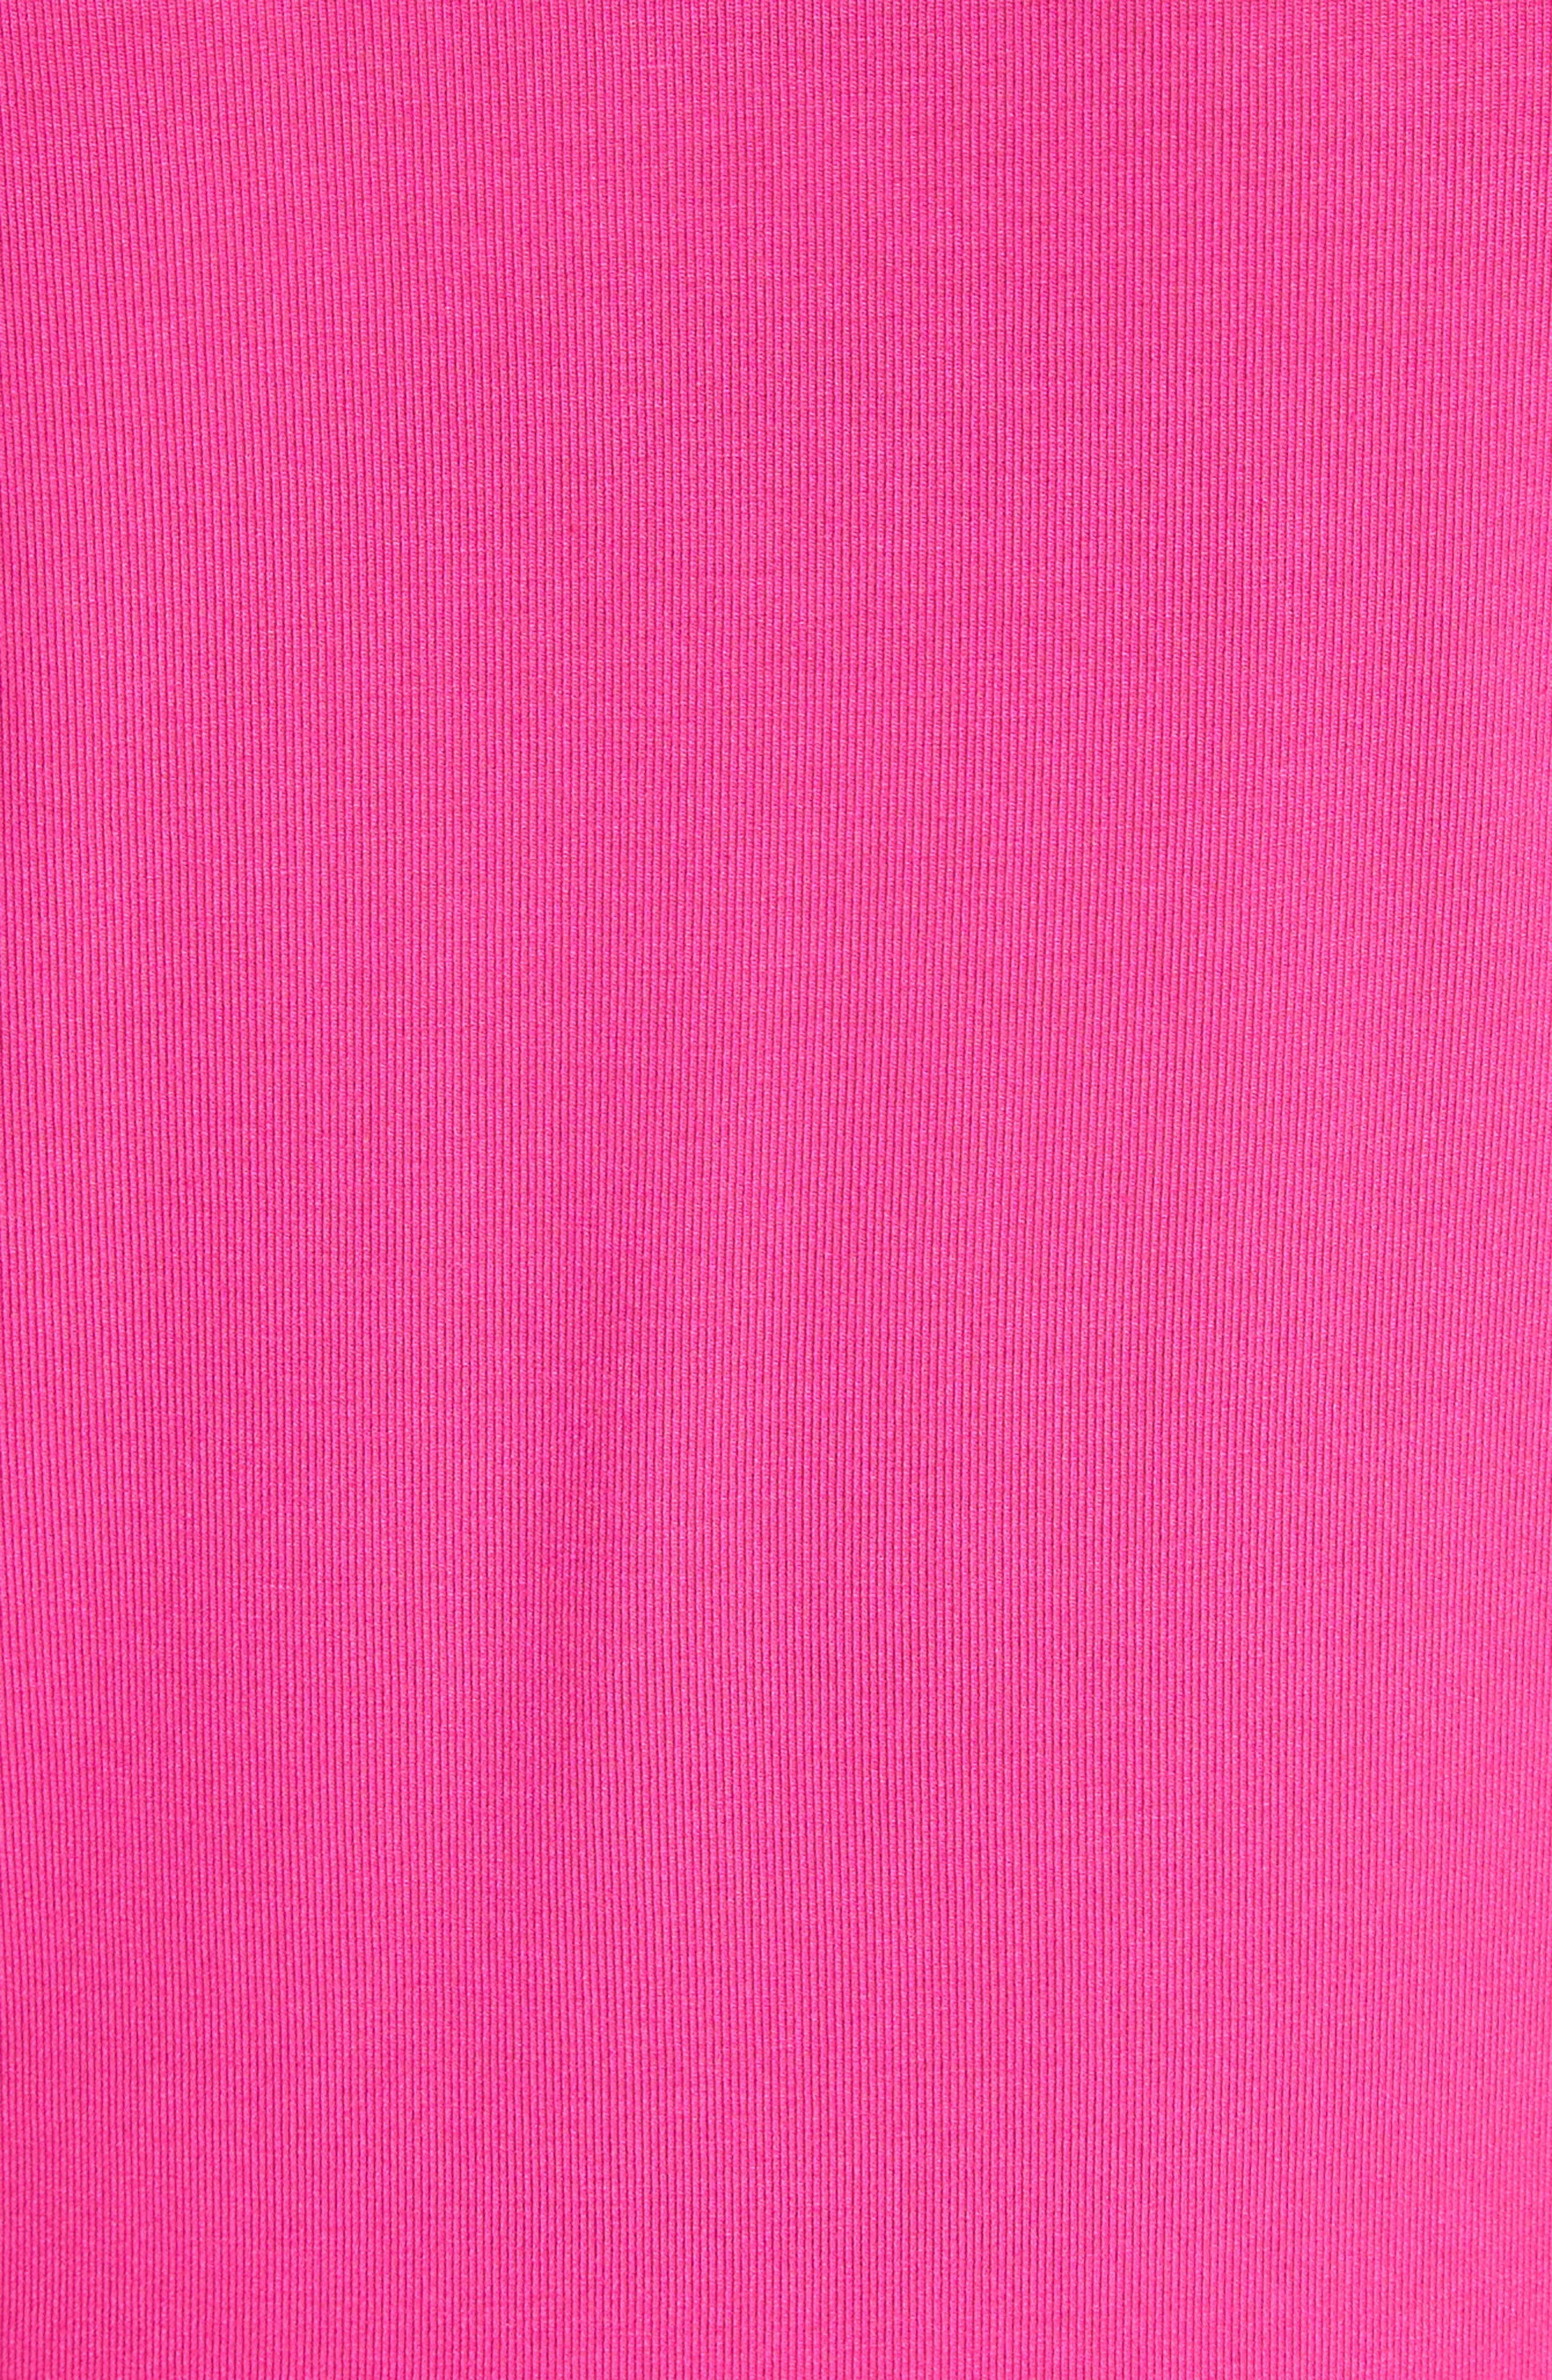 Floral Appliqué Sleeve Tee,                             Alternate thumbnail 5, color,                             Bright Pink